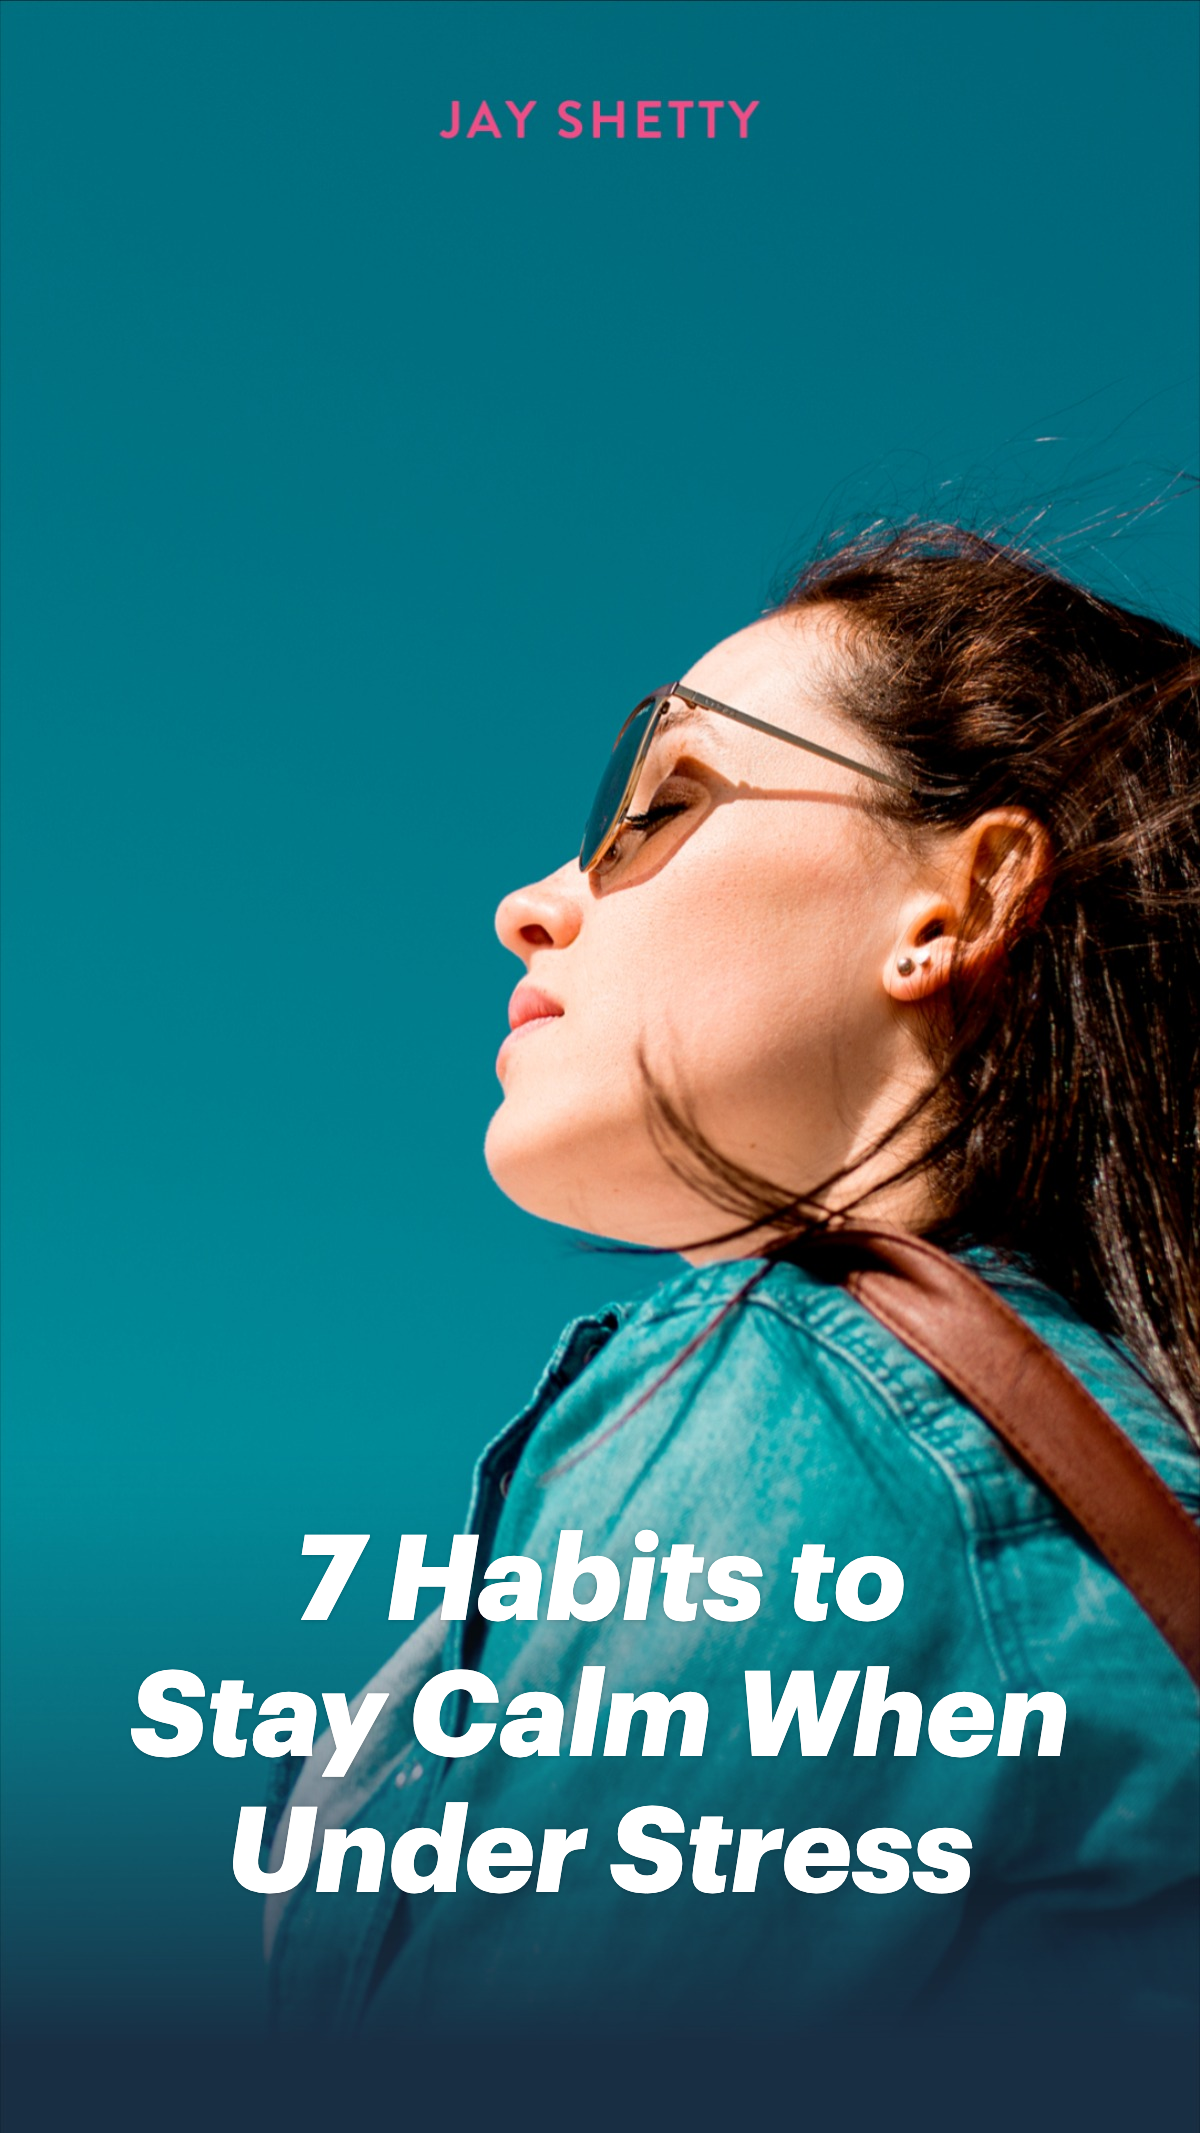 How to stay calm when stressed: 7 Habits of successful people to be calm under stress  Jay Shetty